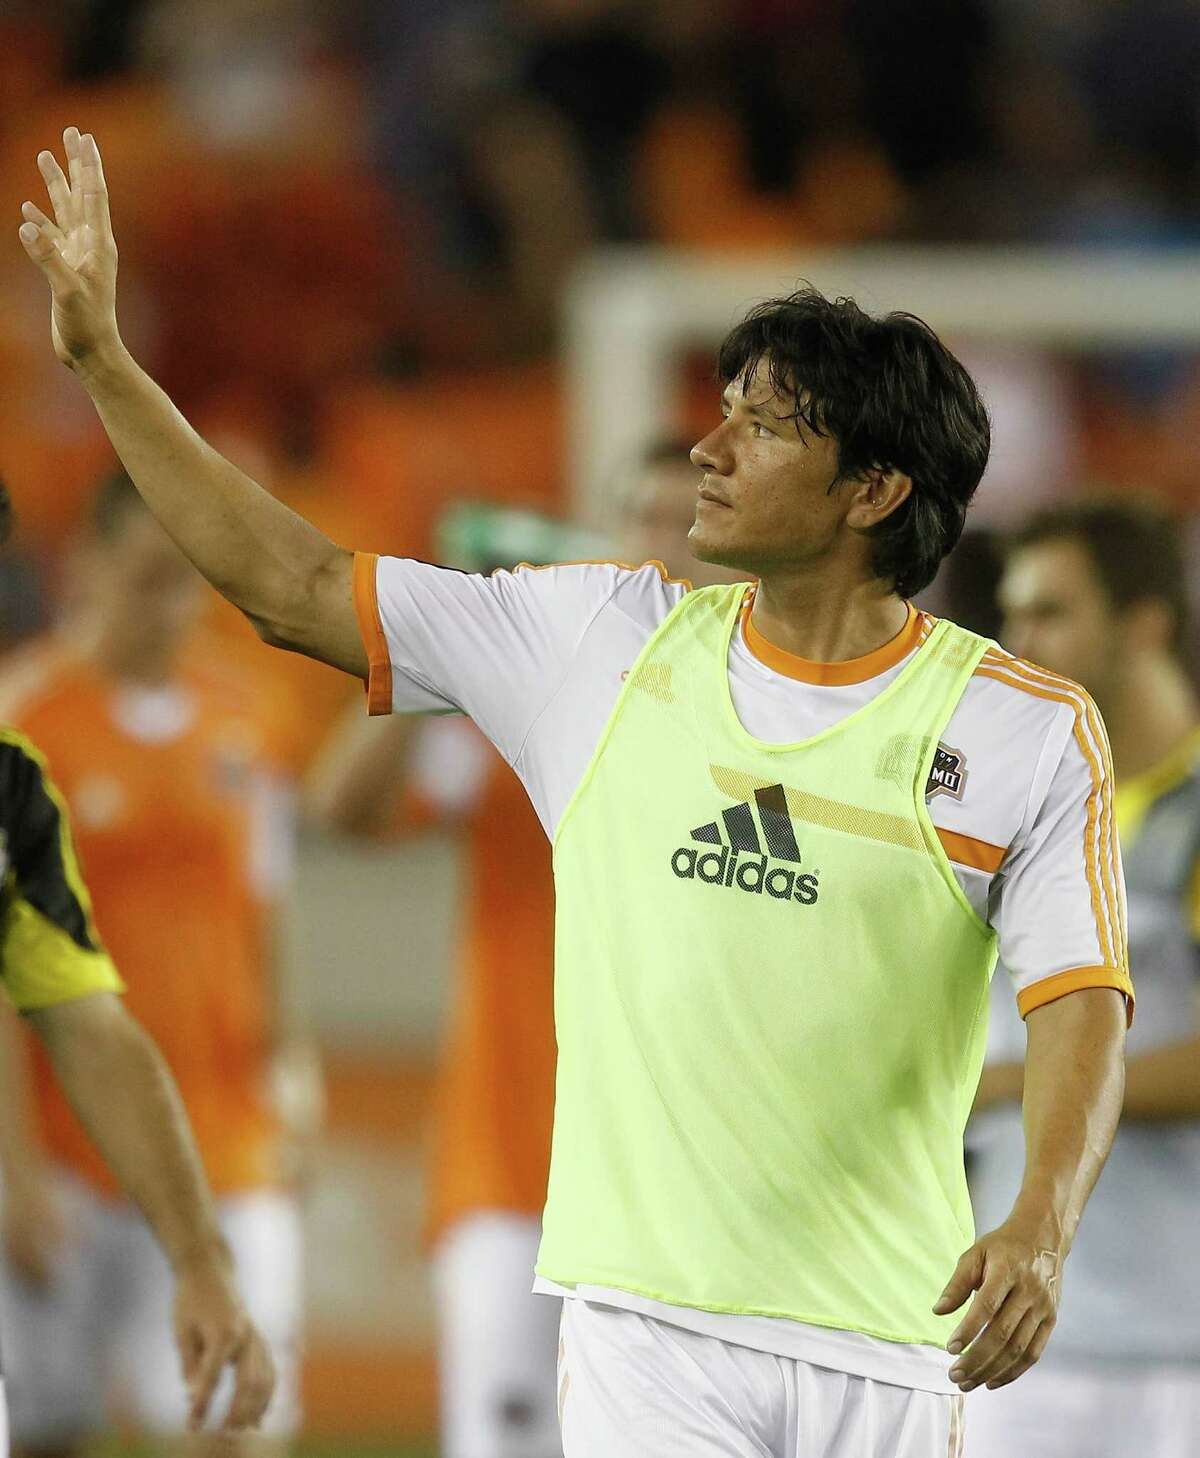 HOUSTON, TX - AUGUST 03: Brian Ching #25 of Houston Dynamo waves to the crowd after a win against the Columbus Crew 3-1 at BBVA Compass Stadium on August 3, 2013 in Houston, Texas. (Photo by Bob Levey/Getty Images)